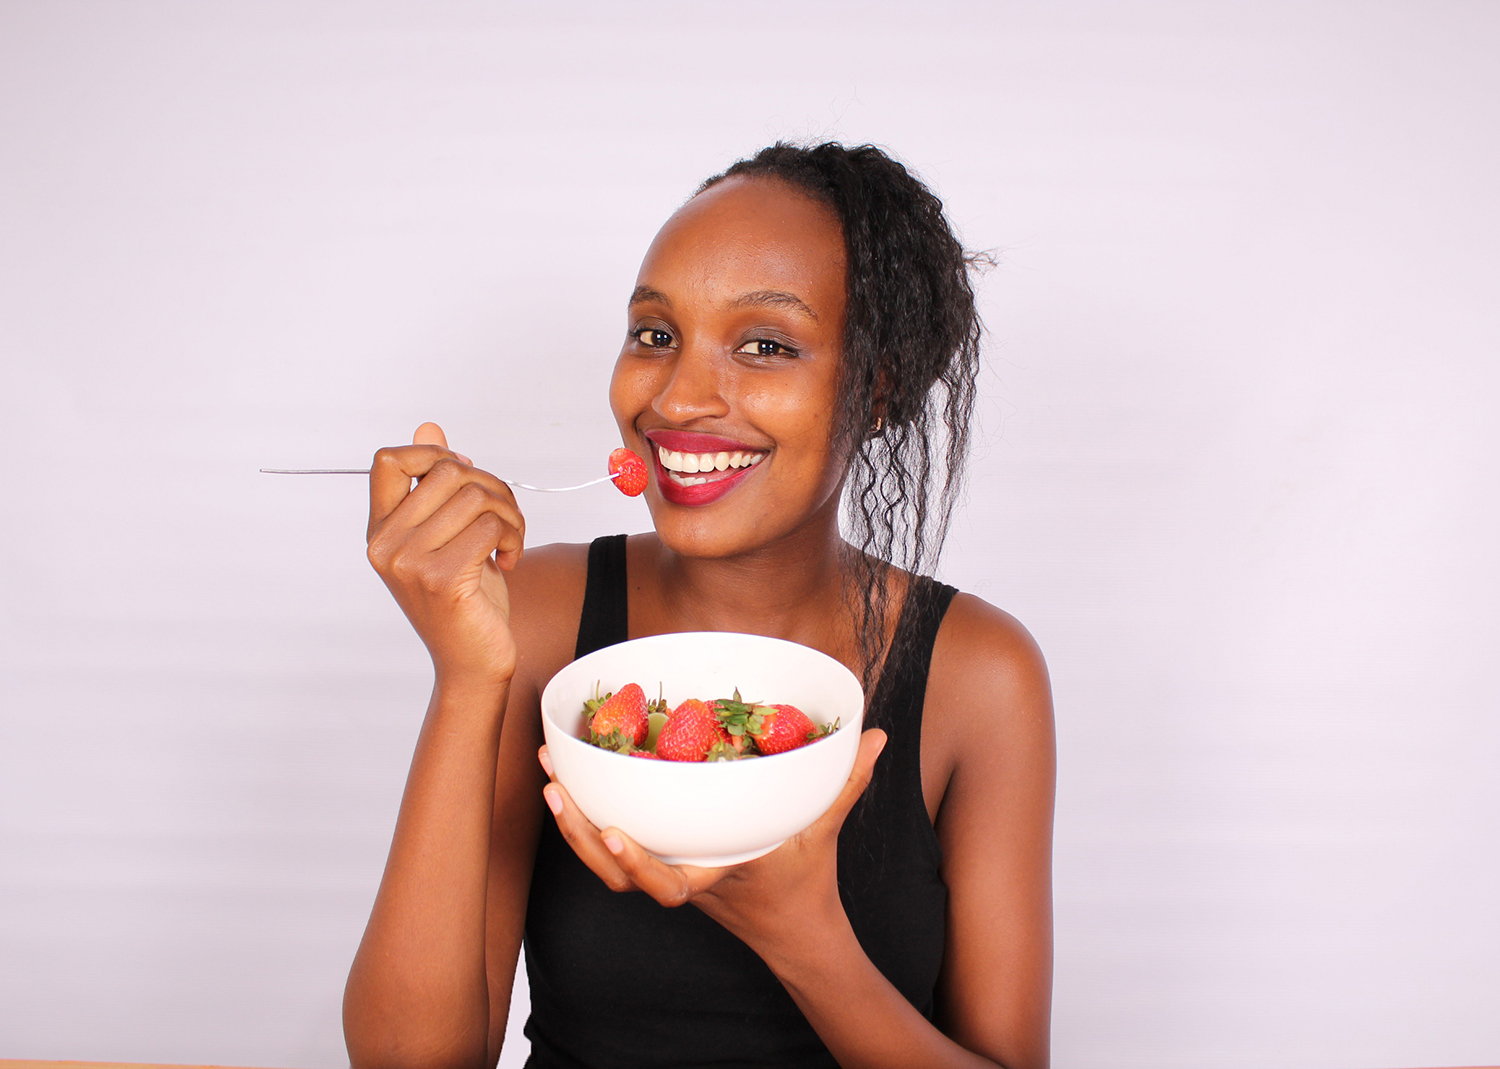 Woman eating fresh strawberries using a folk